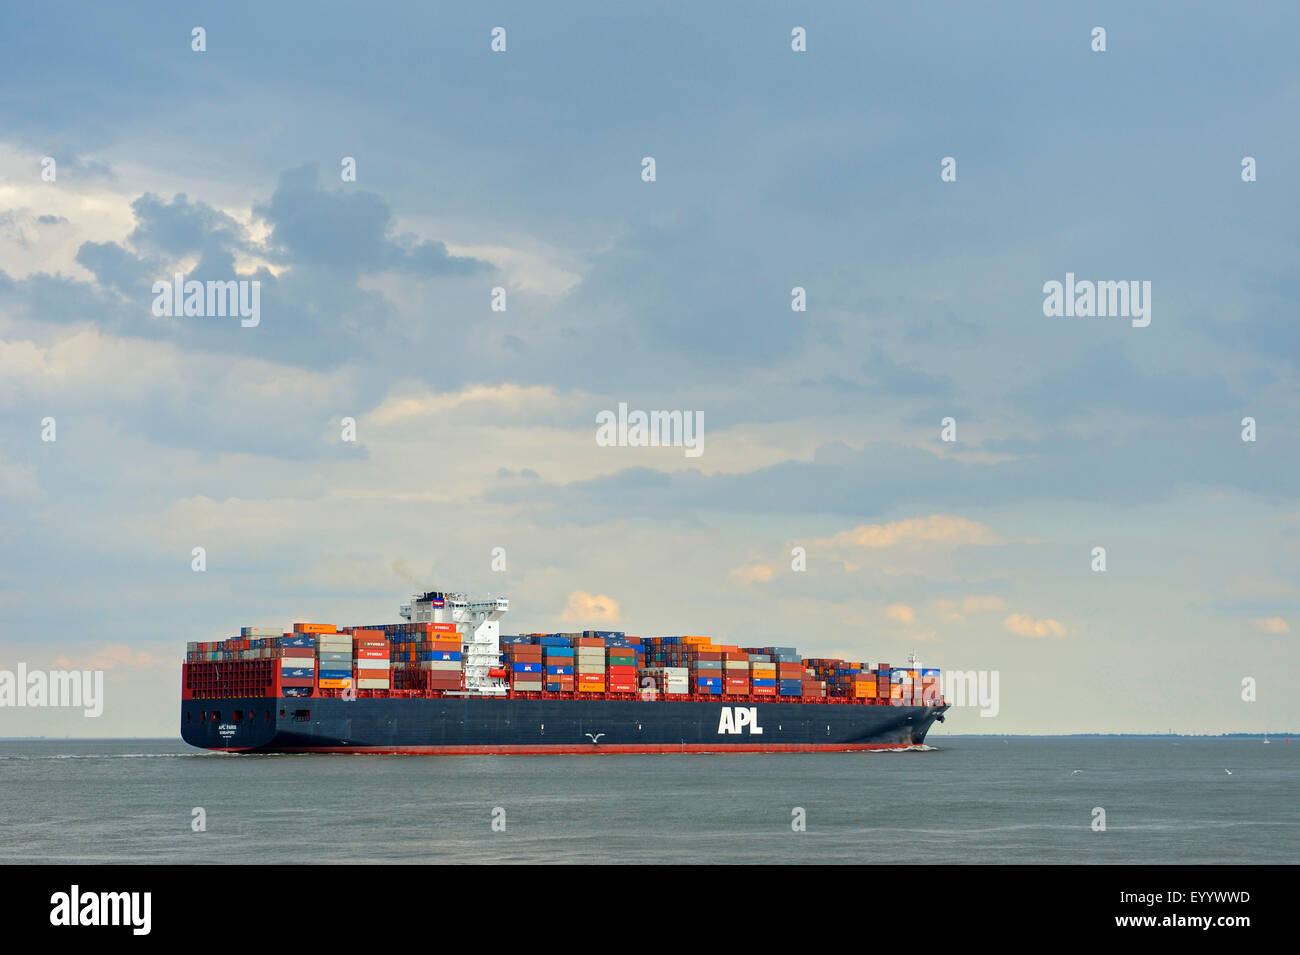 cargo ship in the North Sea, Germany, Lower Saxony, Elbe, Cuxhaven - Stock Image